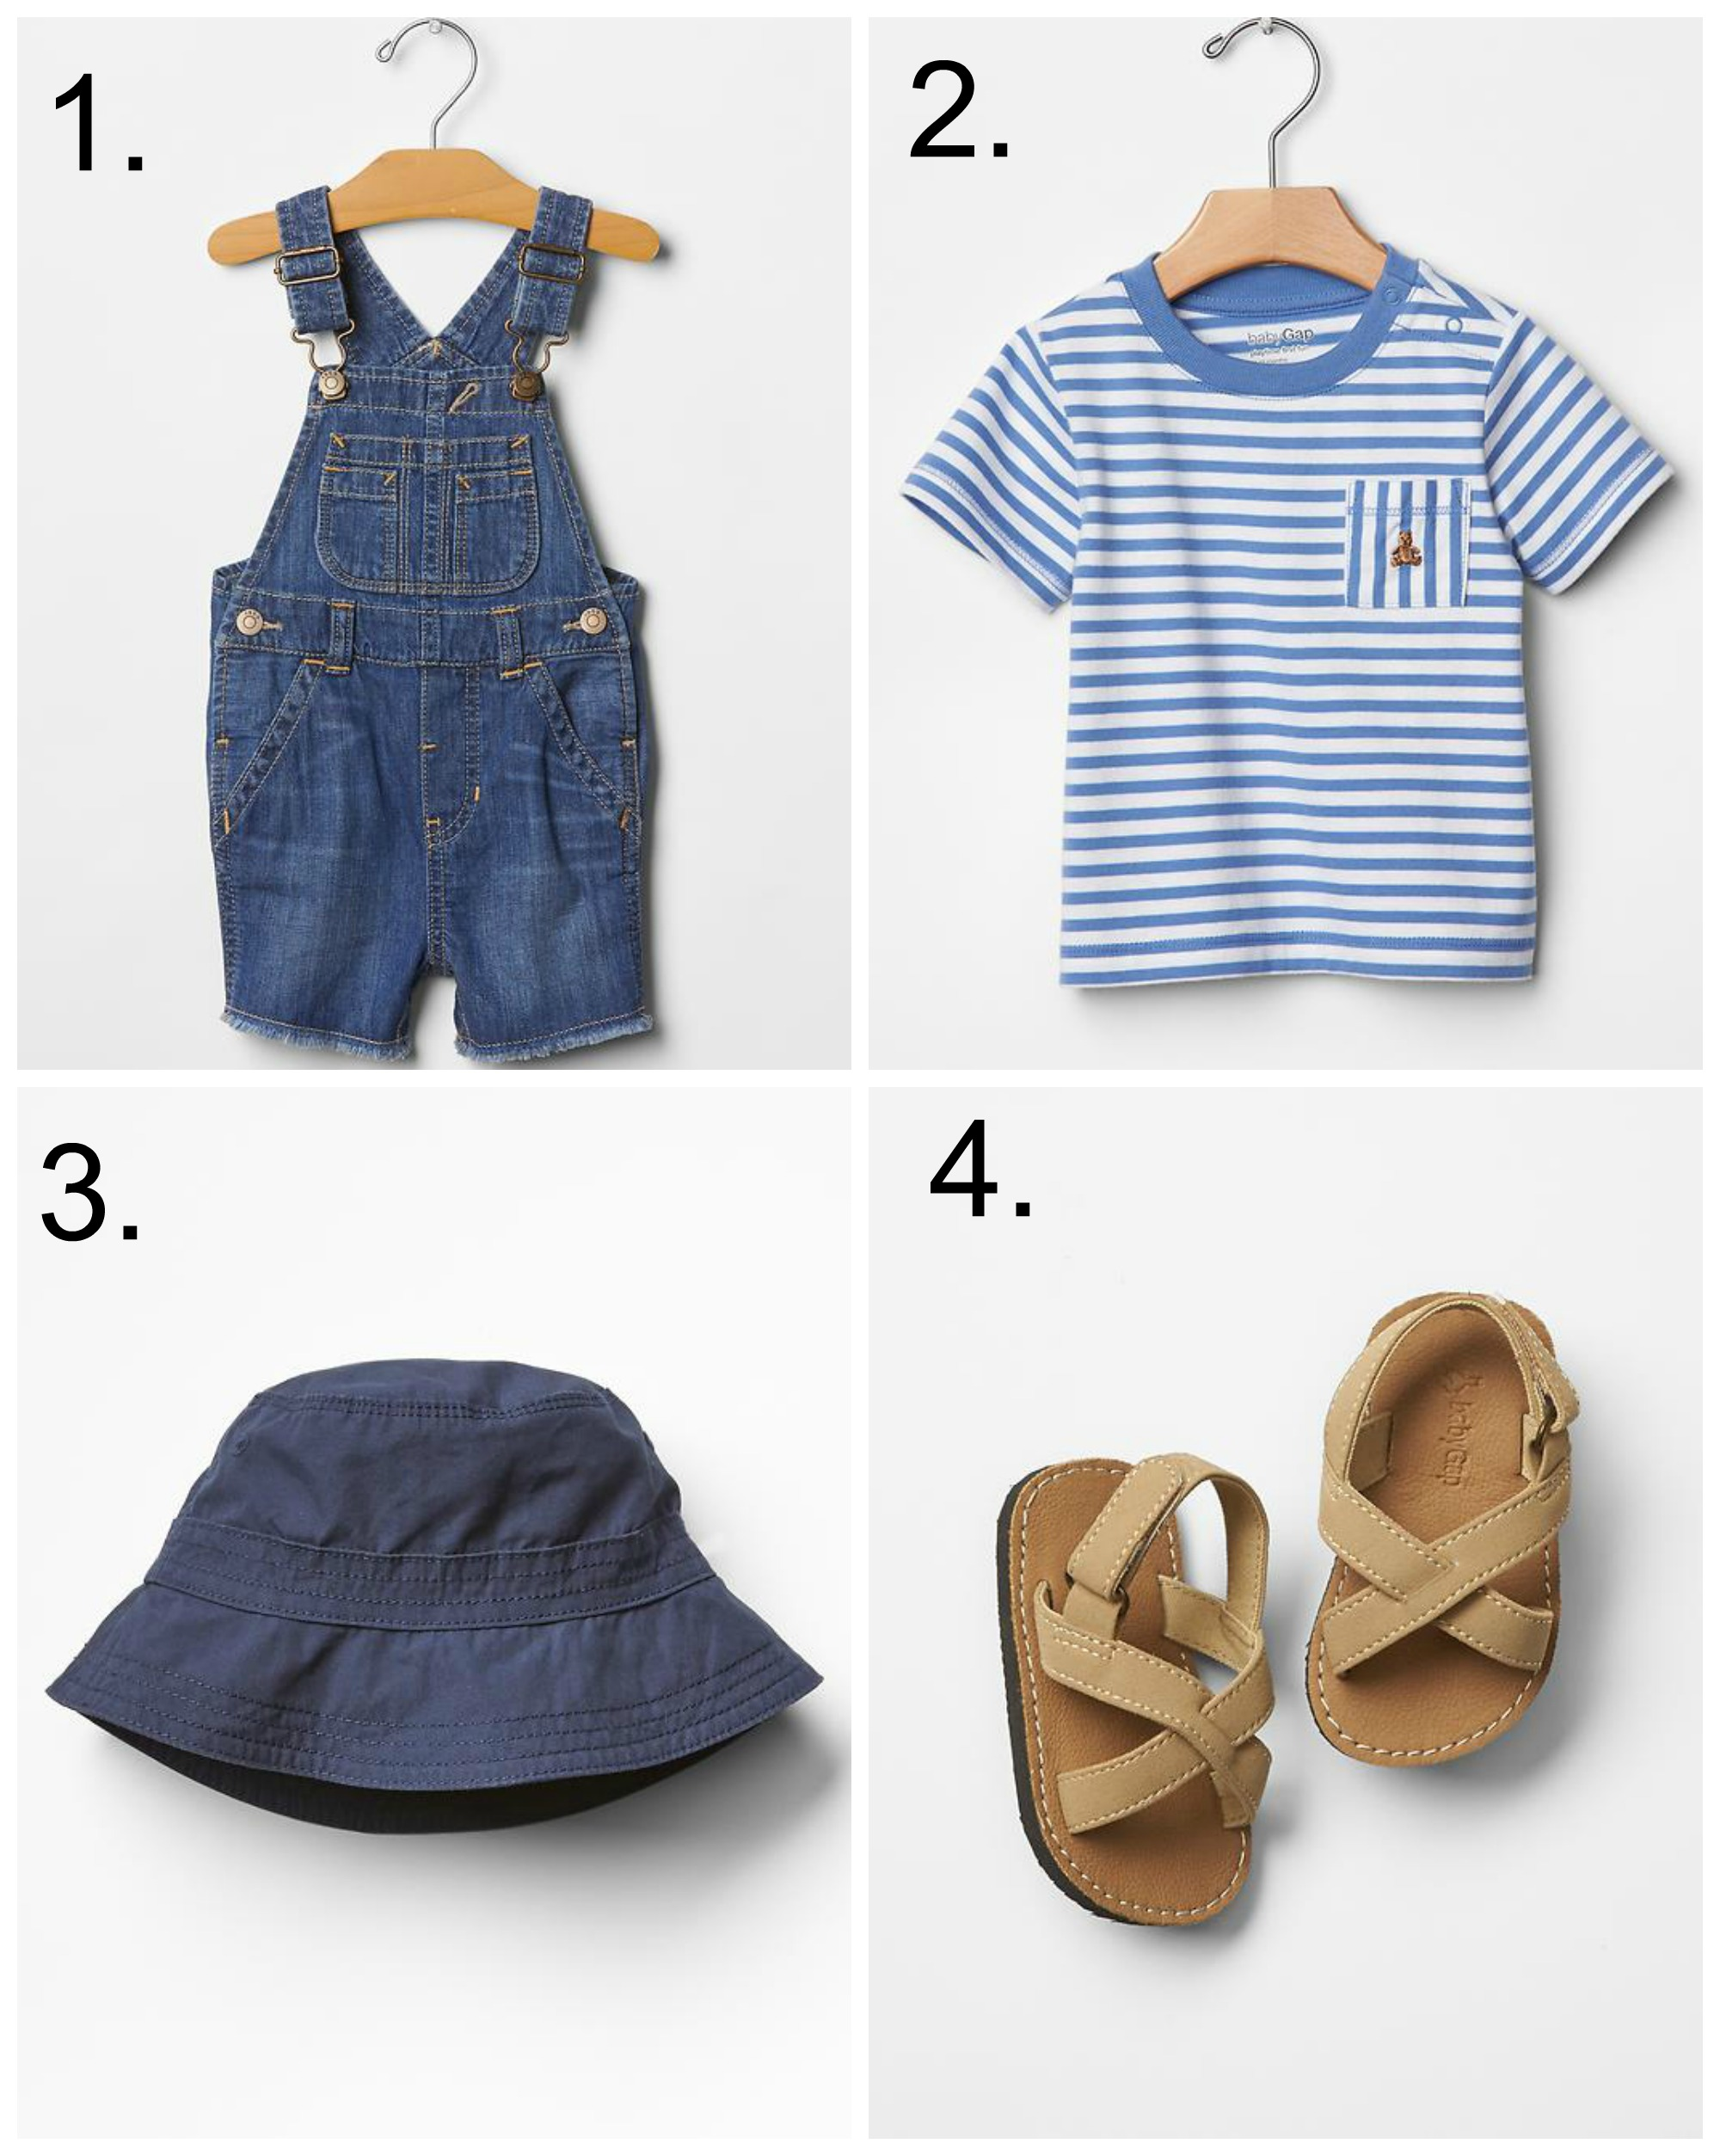 Gap s Spring Baby Collection Shelley Loves